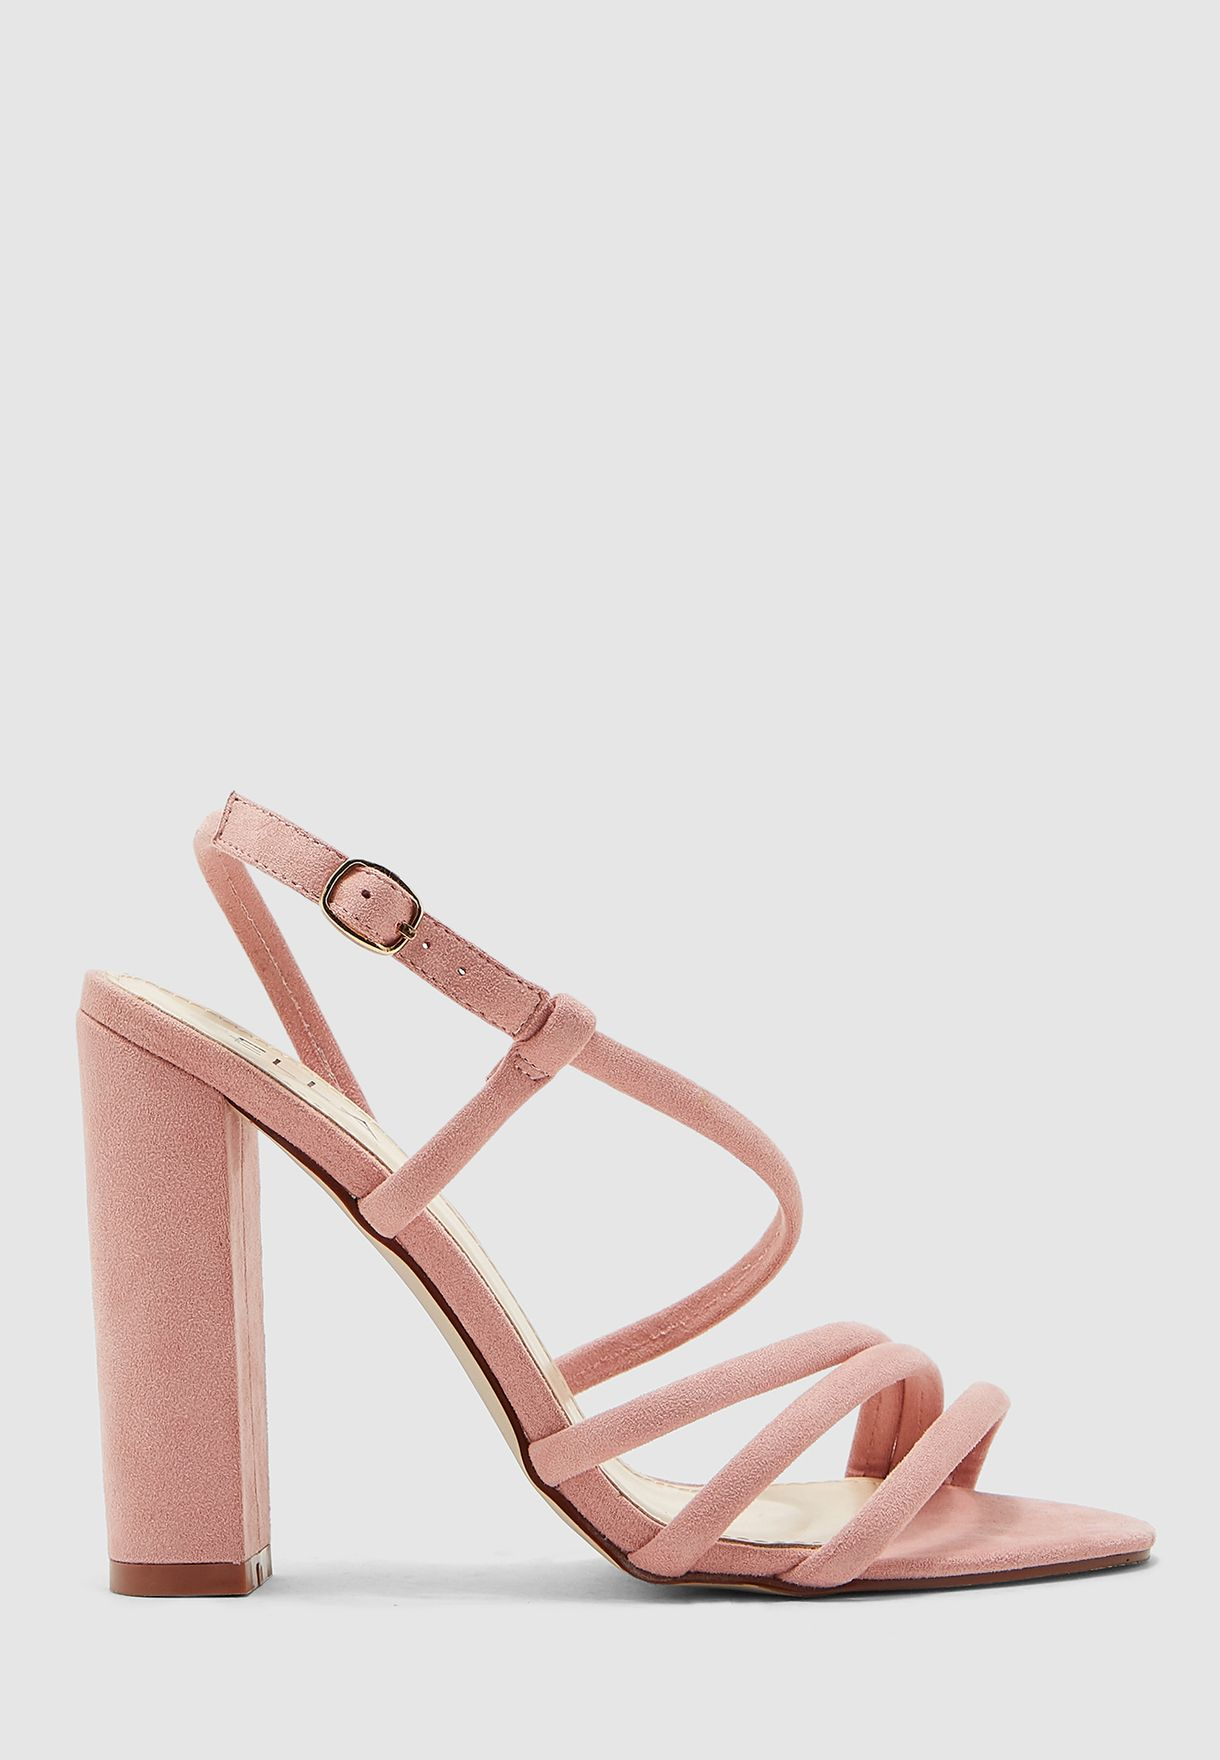 Strappy Sandals With Block Heel